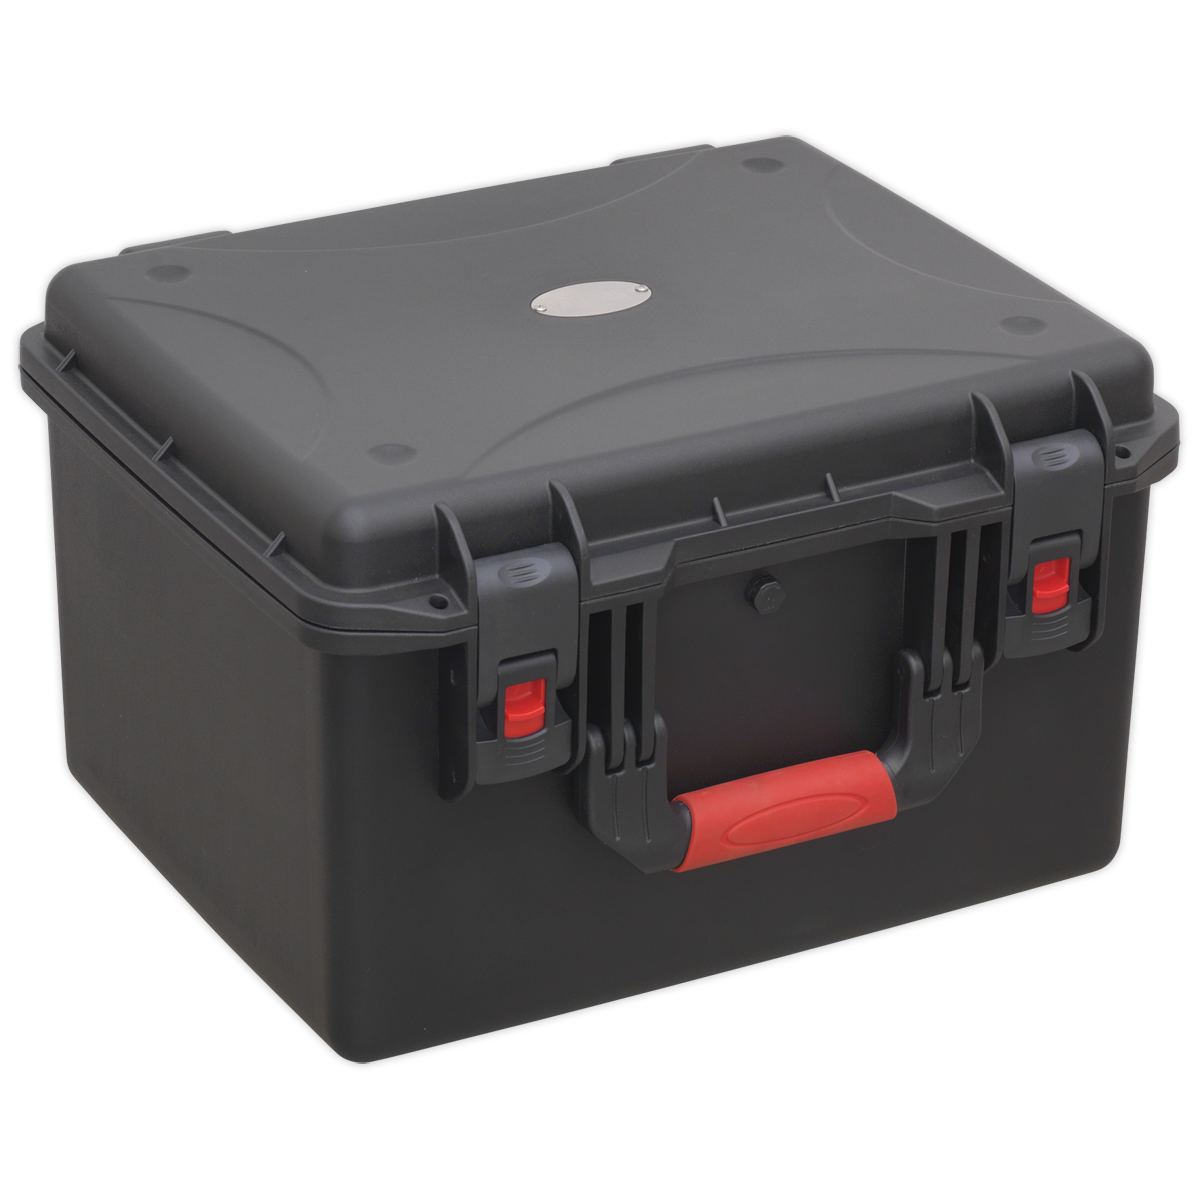 Professional Water Resistant Storage Case - 465mm   SEALEY AP625 by Sealey   New